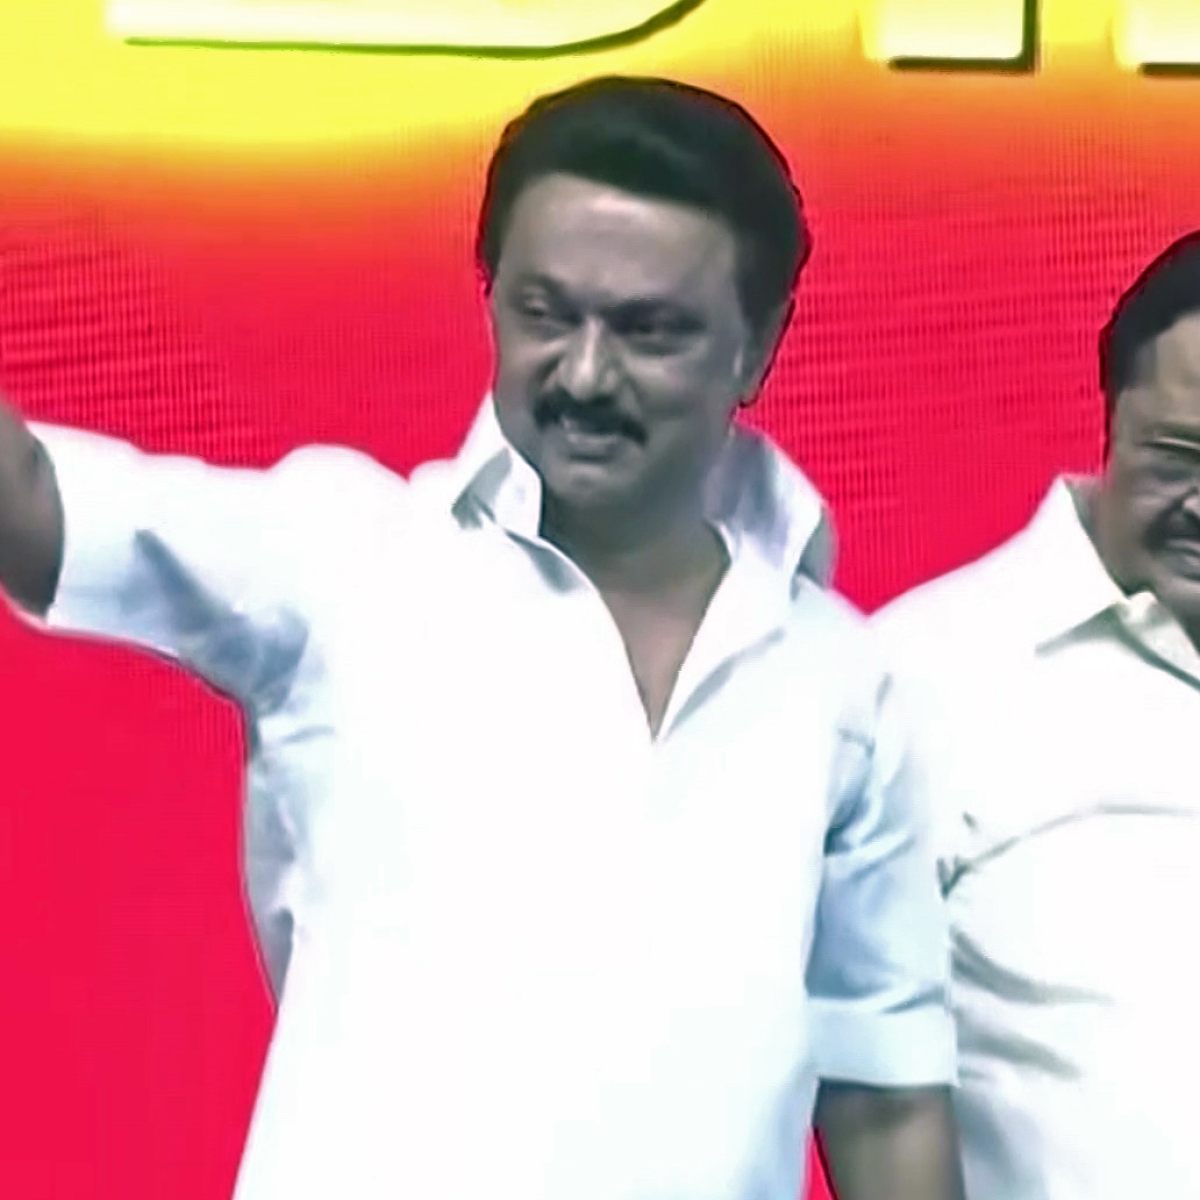 Tamil Nadu polls: DMK president Stalin promises Rs 1,000 cash aid for housewives if voted to power